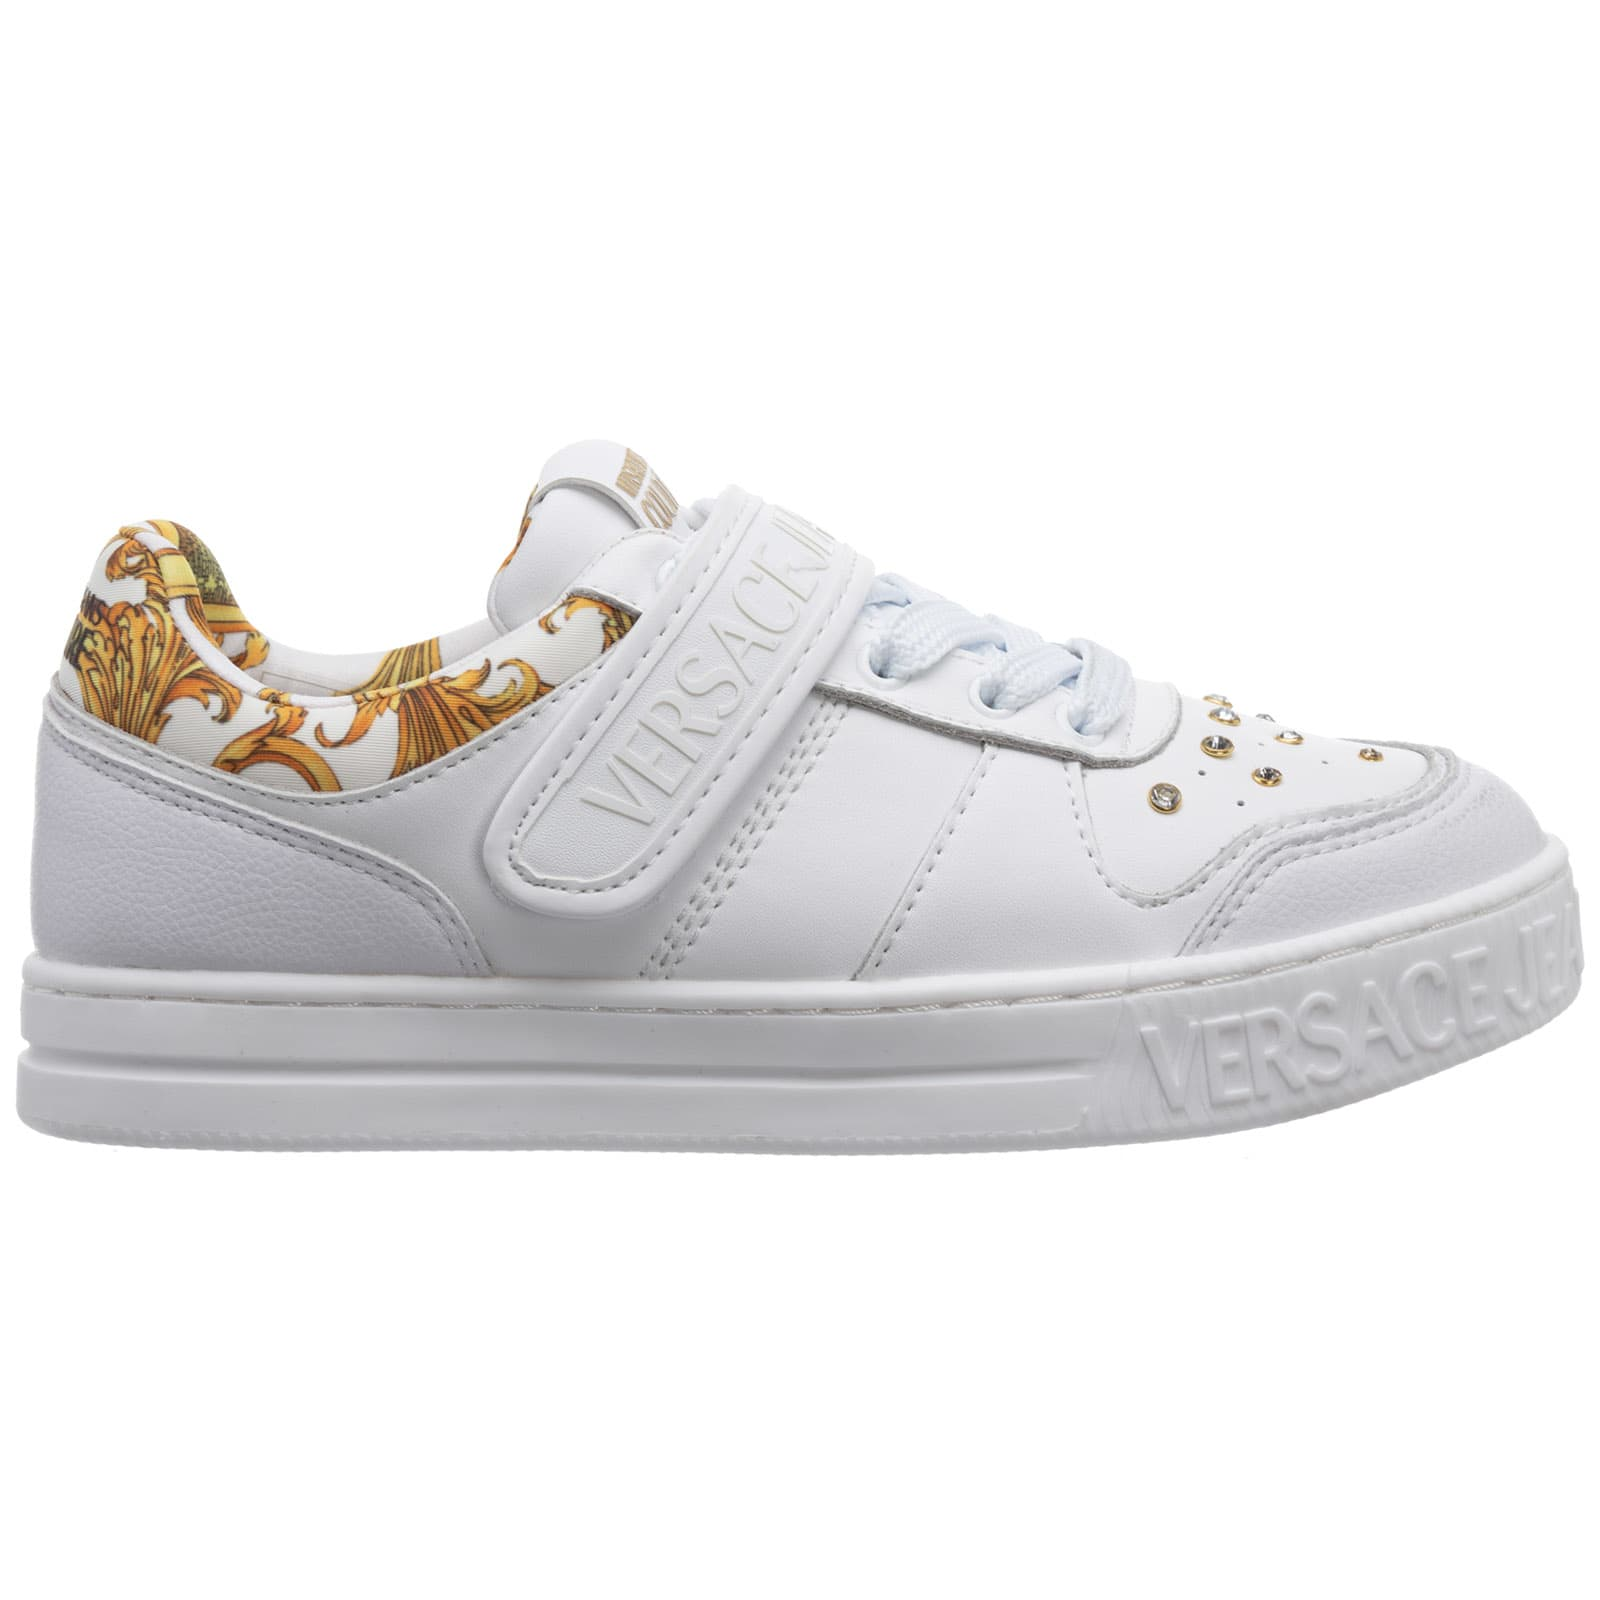 Versace Jeans Couture FONDO COURT SNEAKERS